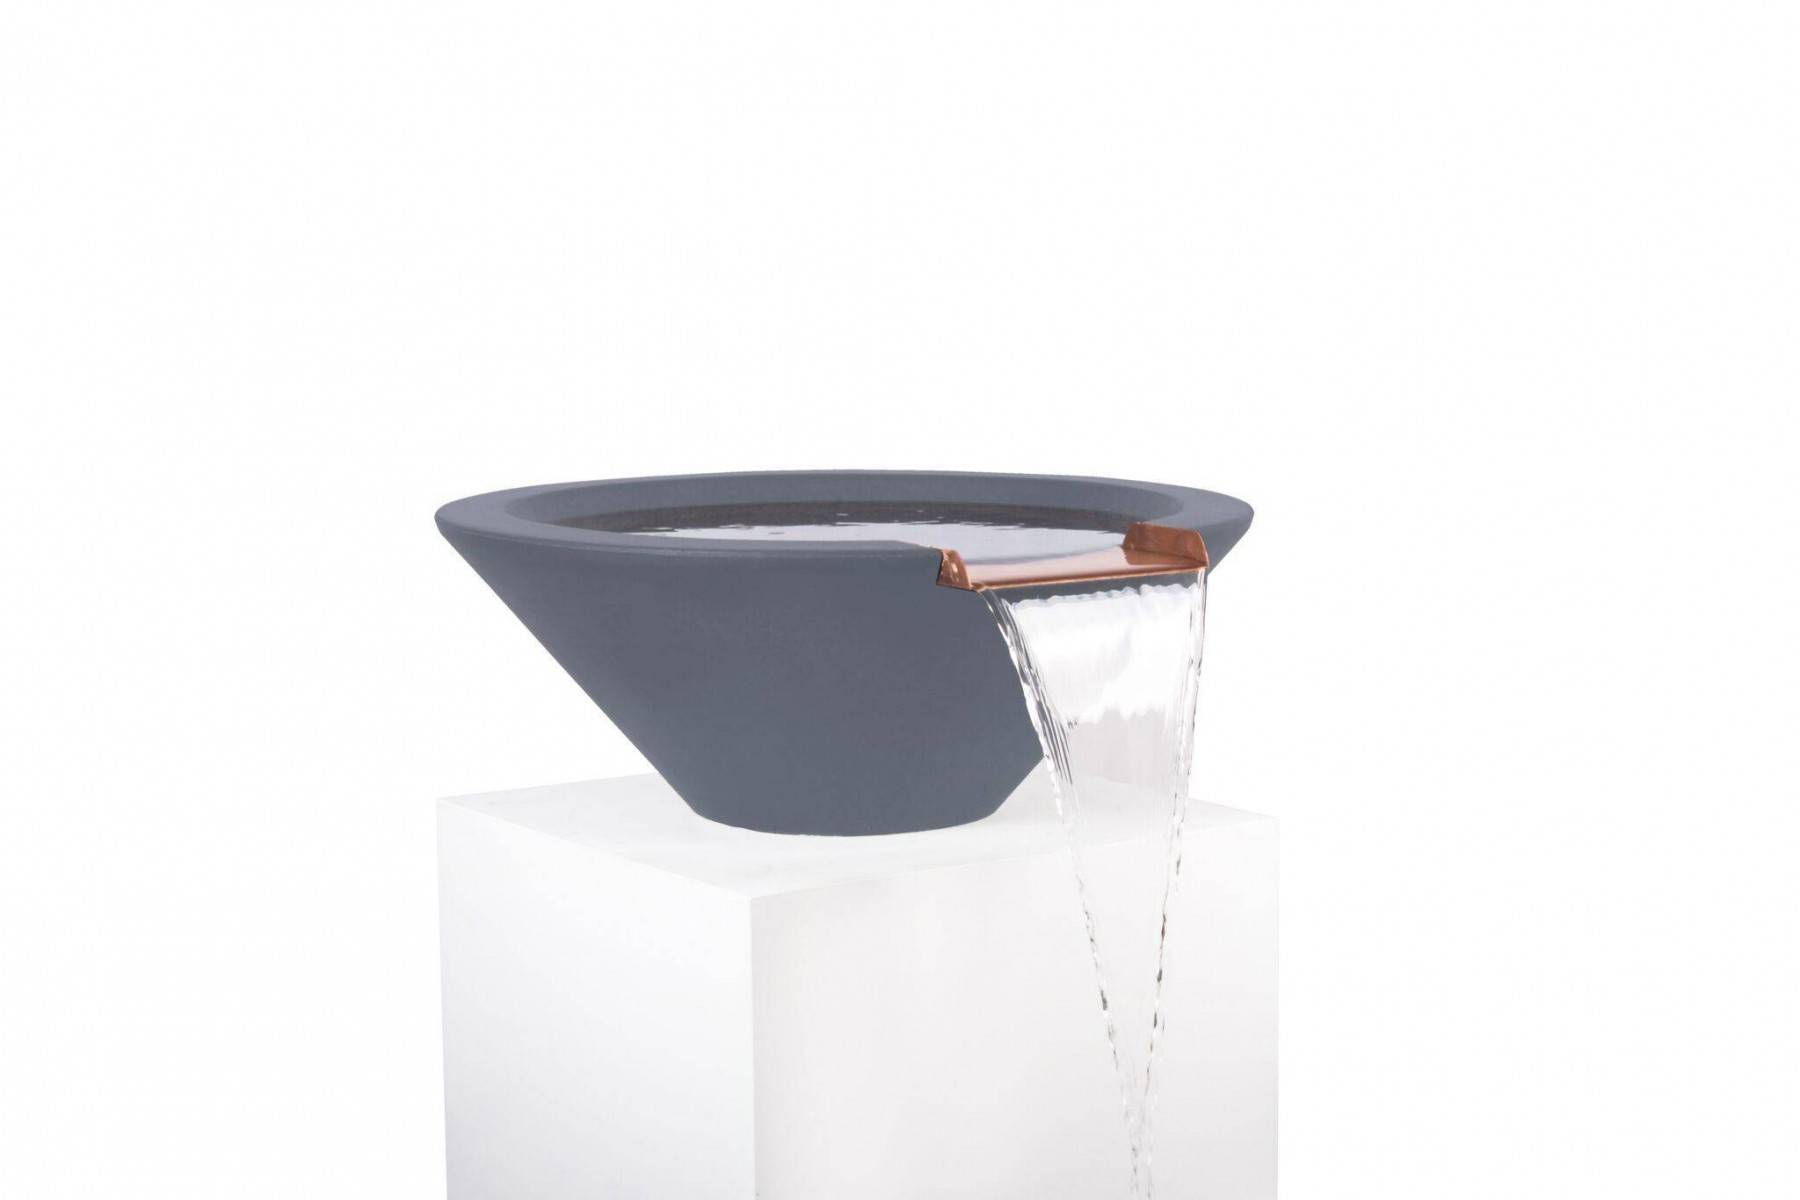 Fountain Bowl Wok Style For Your Designer Pool